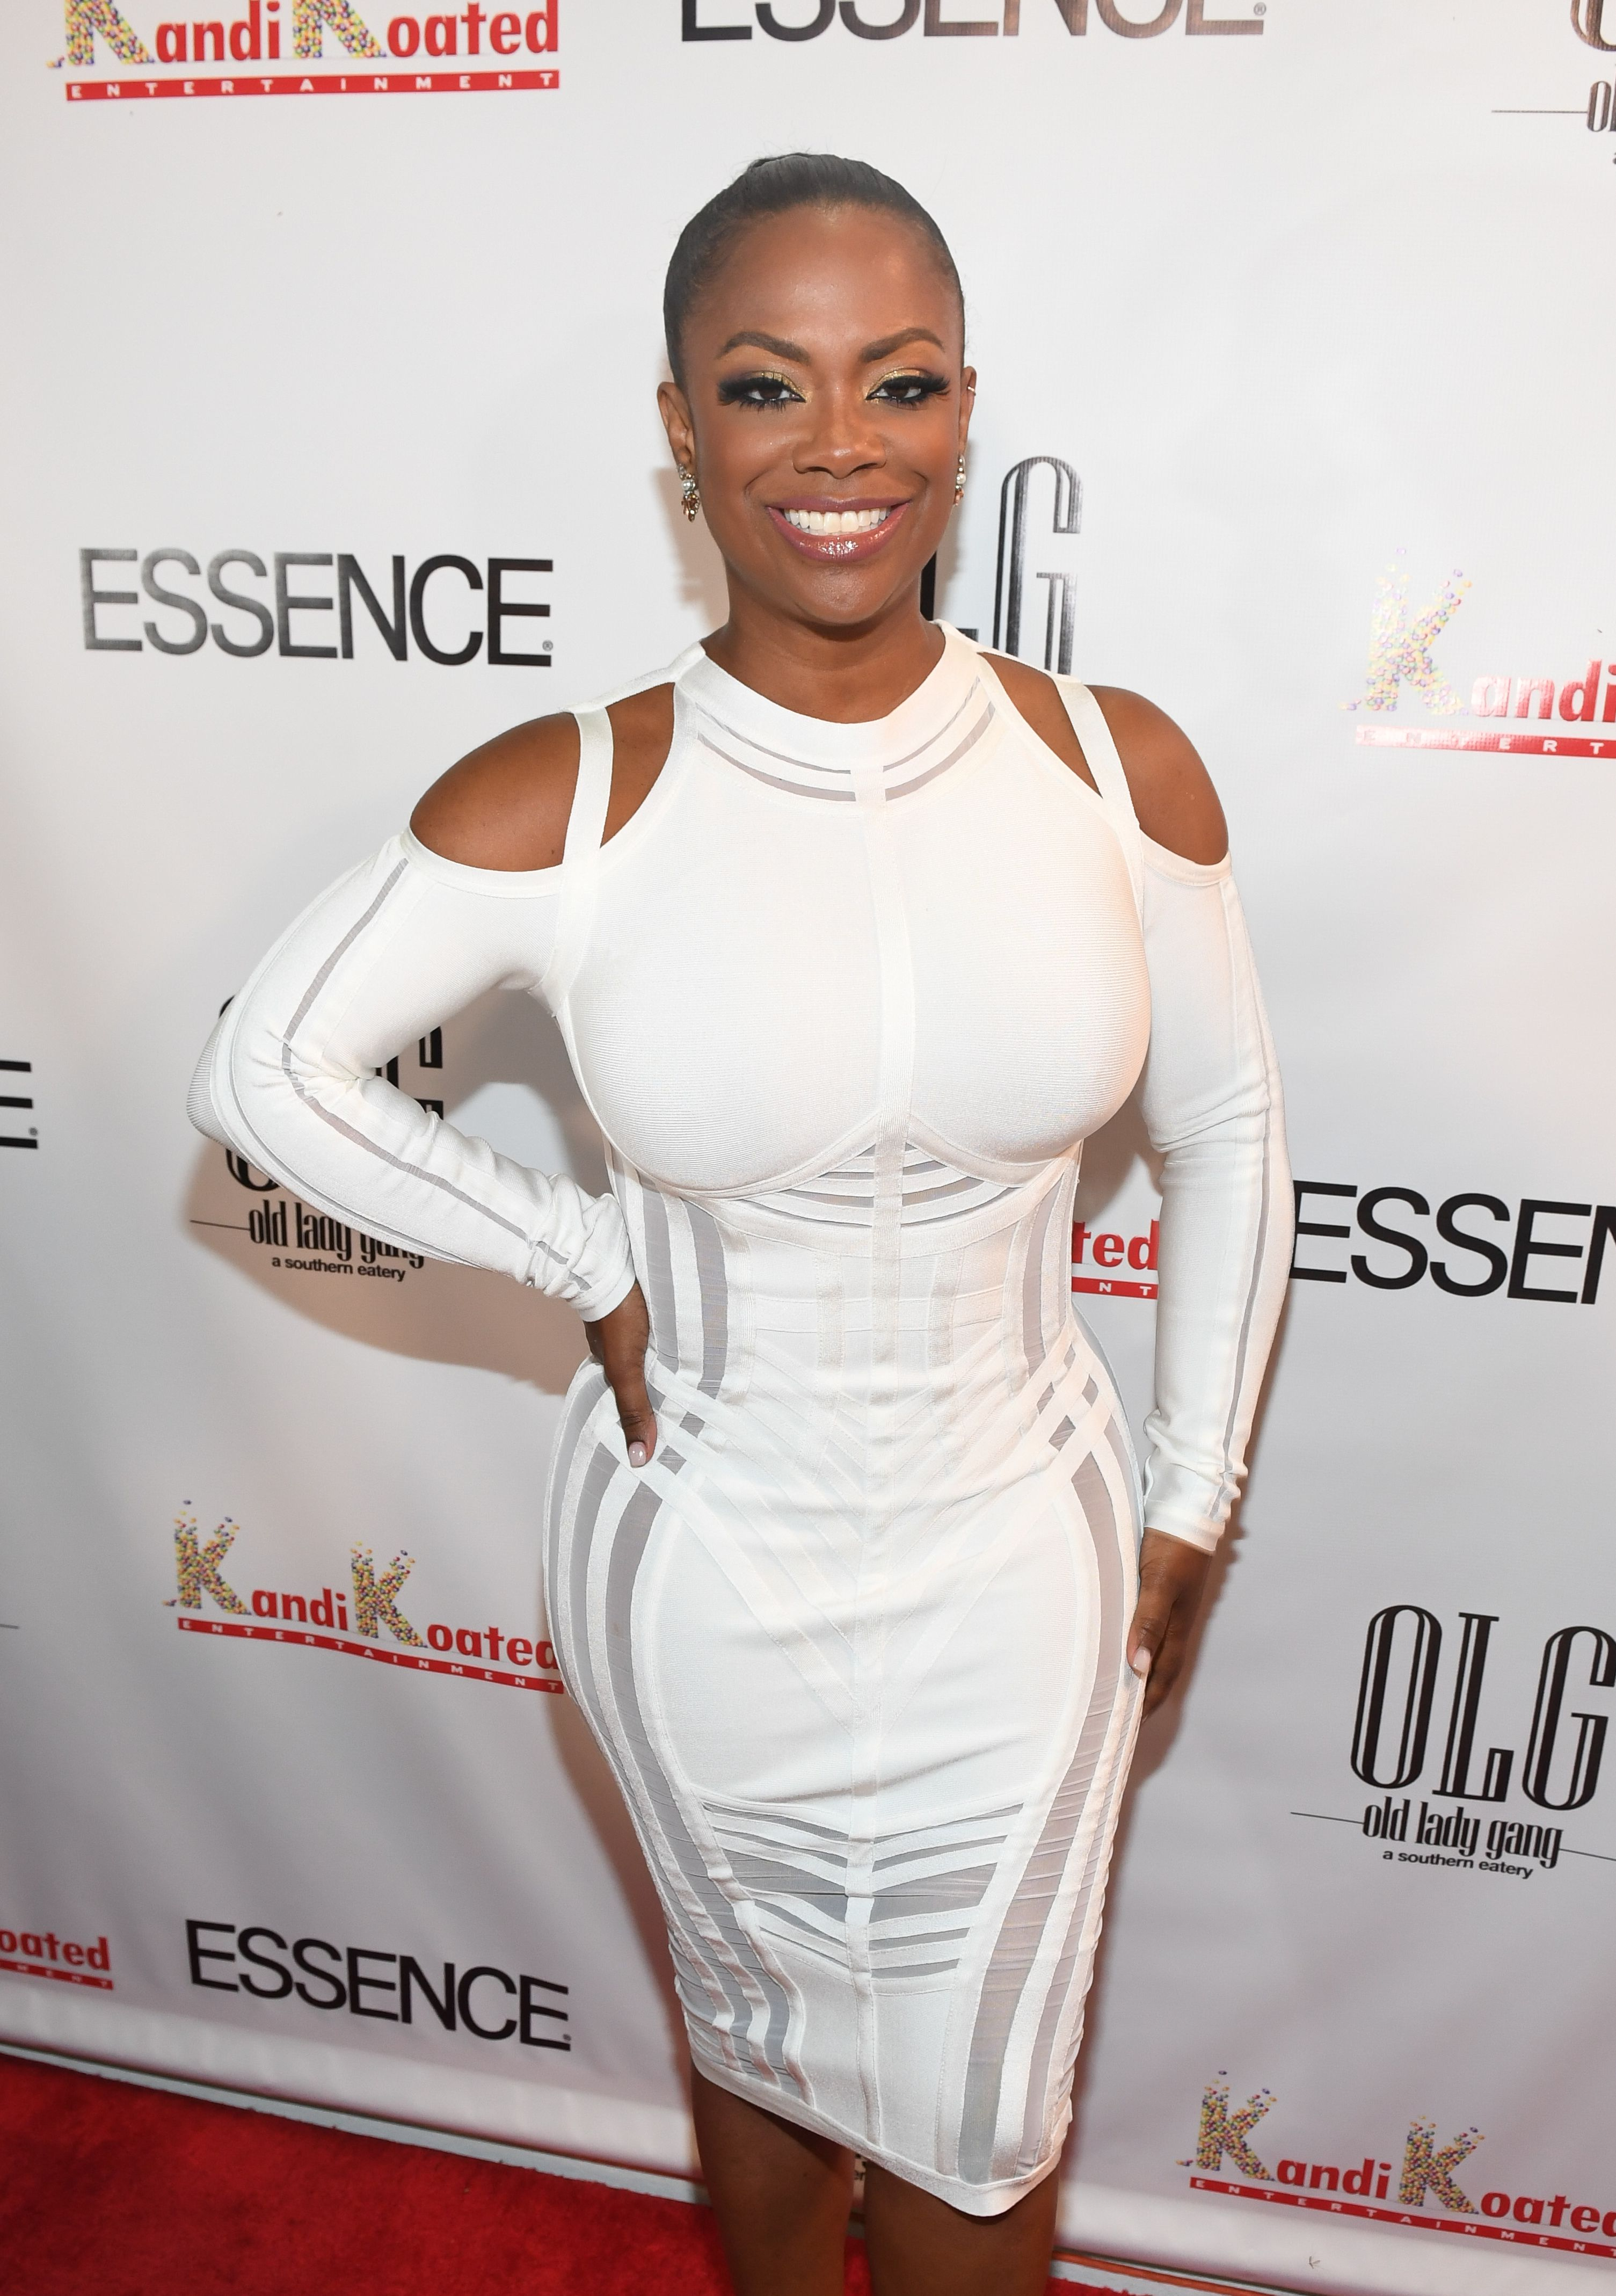 Kandi Burruss at Essence Magazine's celebration of her October cover at Revel on September 22, 2017   Photo: Getty Images